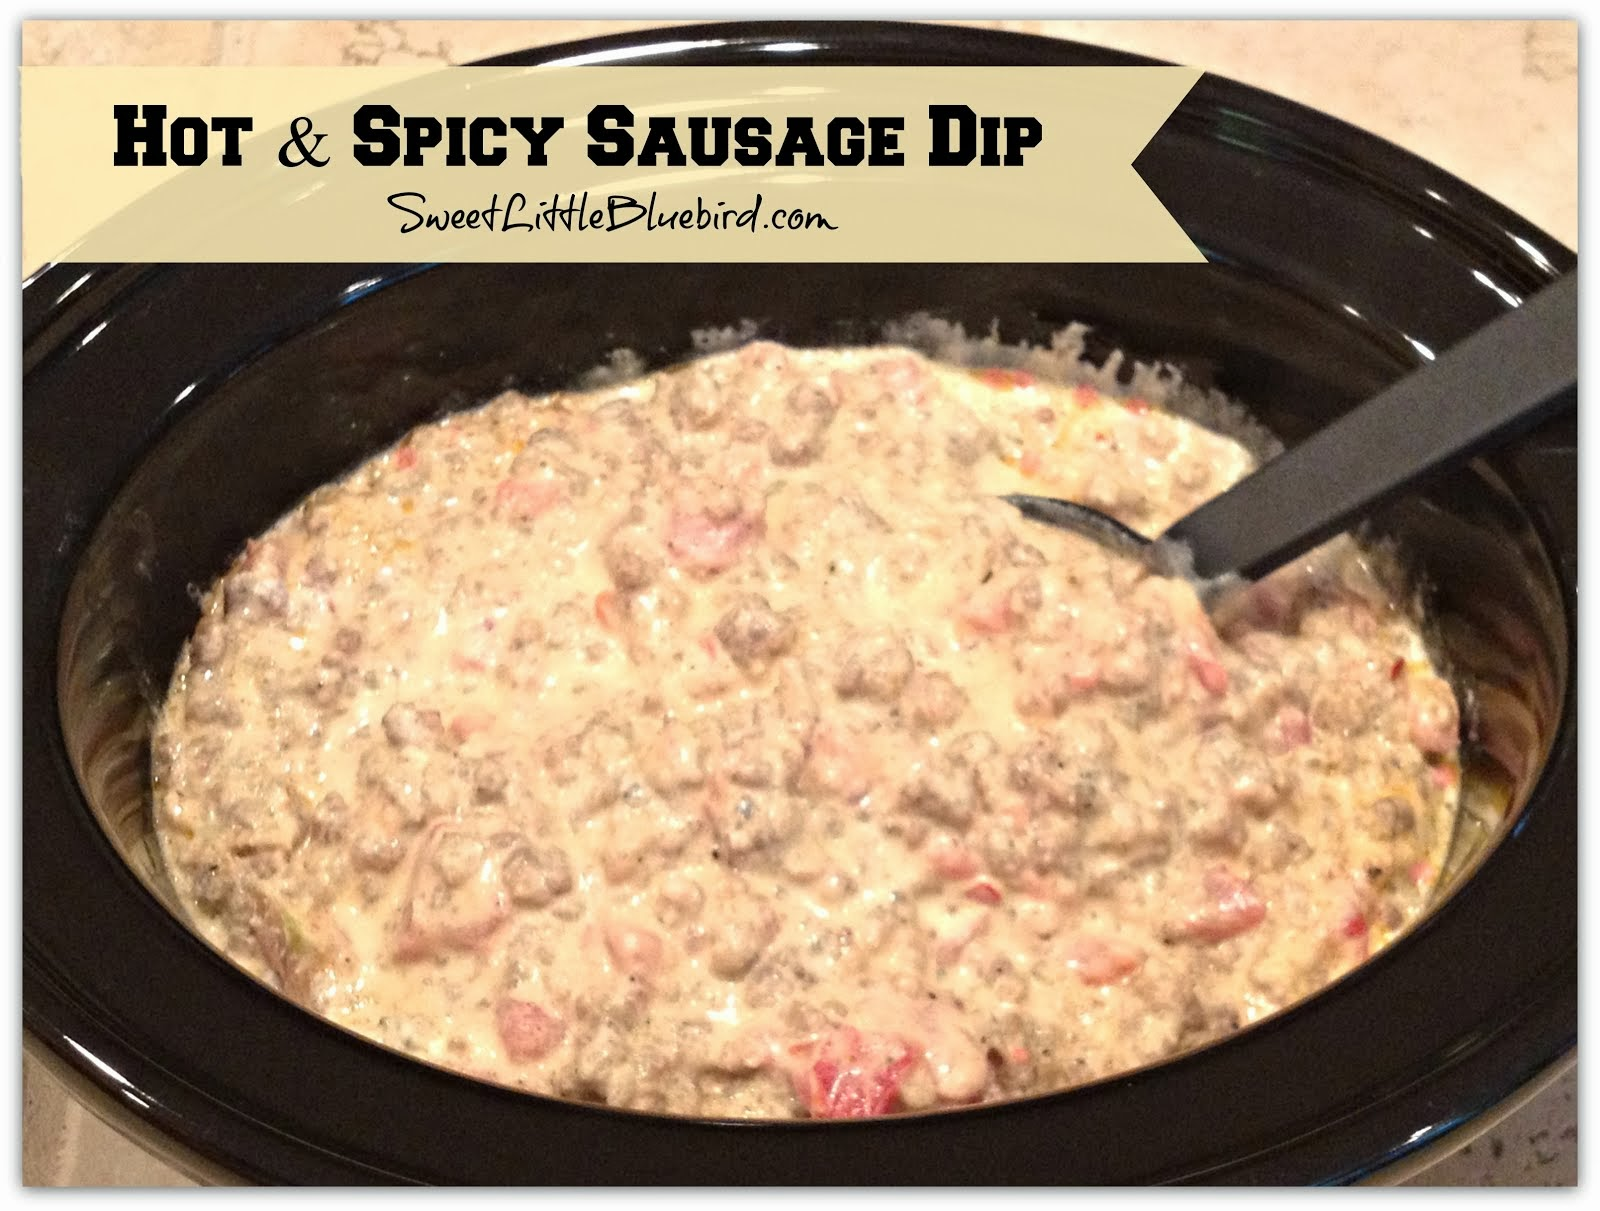 Hot Spicy Sausage Dip